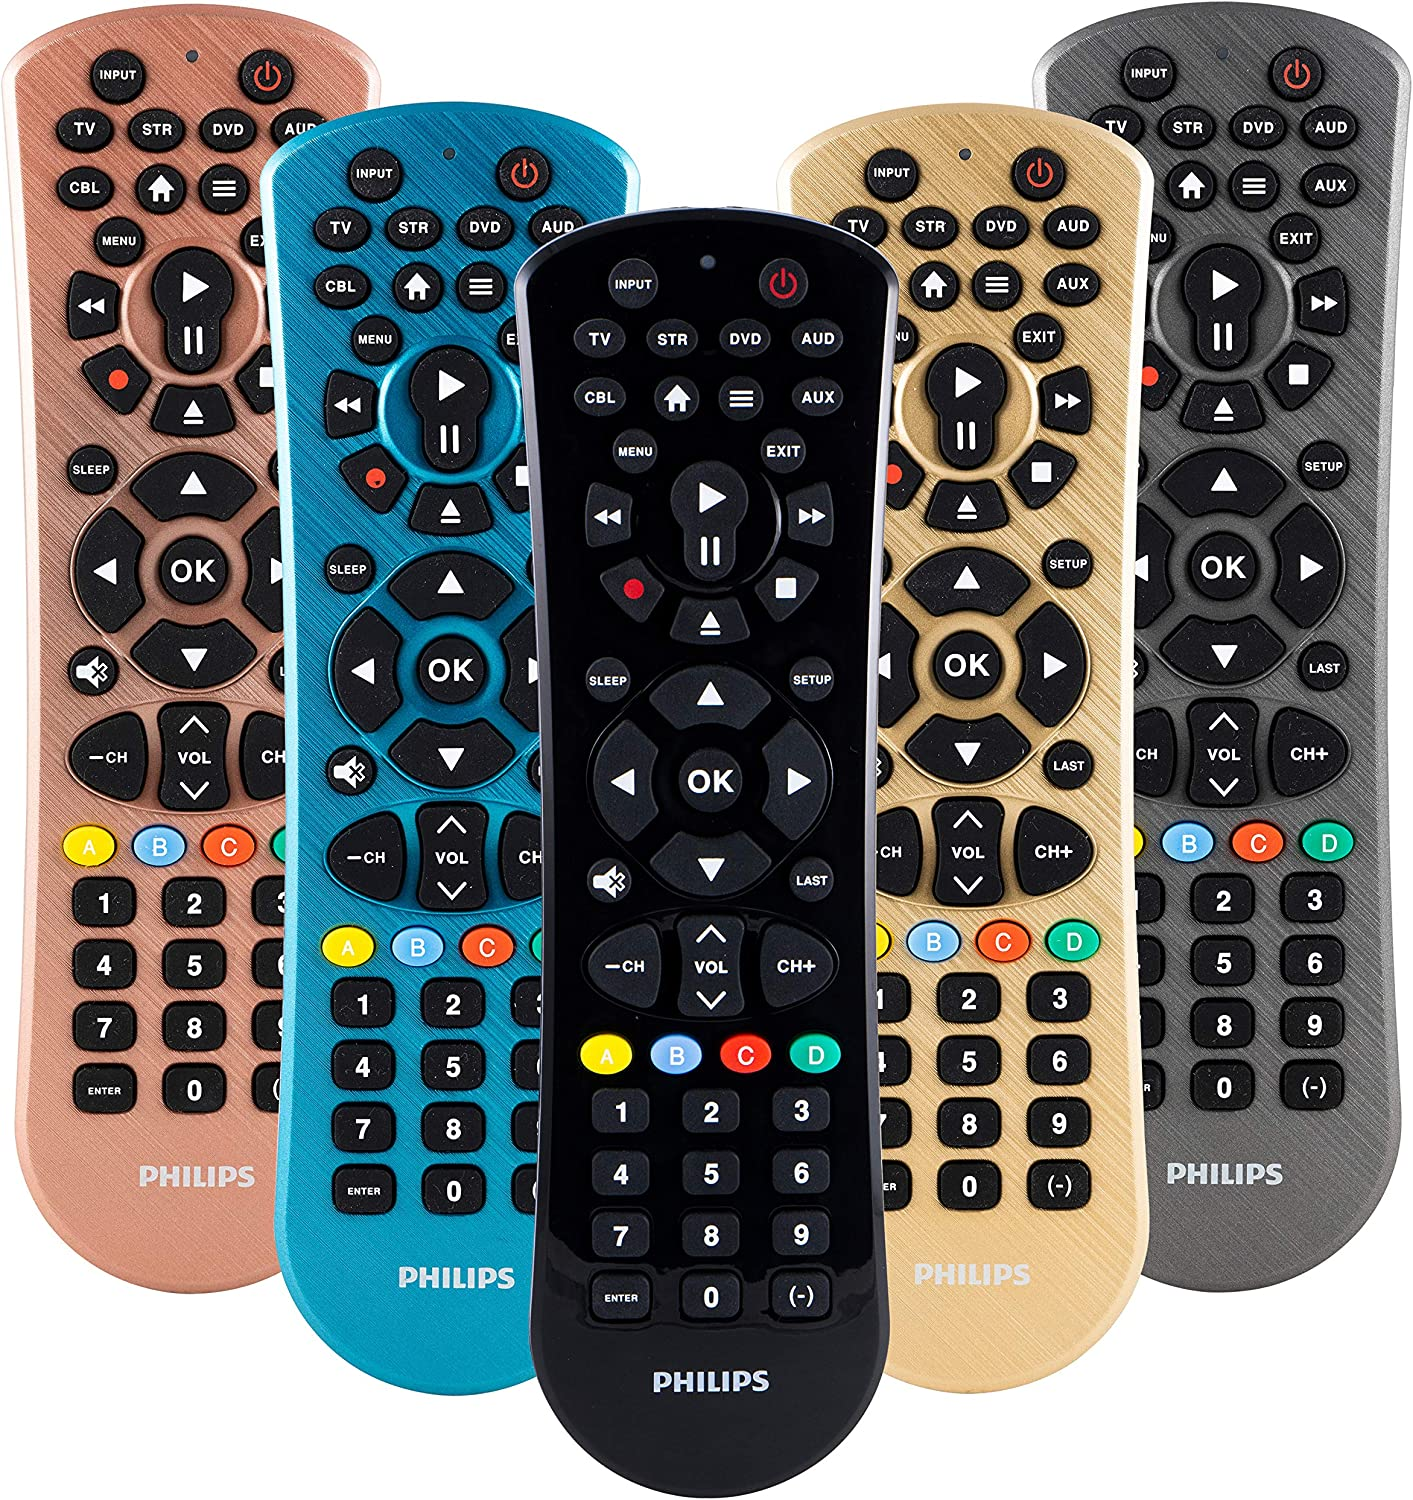 Philips Universal Remote Control for Samsung, Vizio, LG, Sony, Sharp, Roku, Apple TV, RCA, Panasonic, Smart TVs, Streaming Players, Blu-ray, DVD, 6-Device, Black, SRP9263C/27